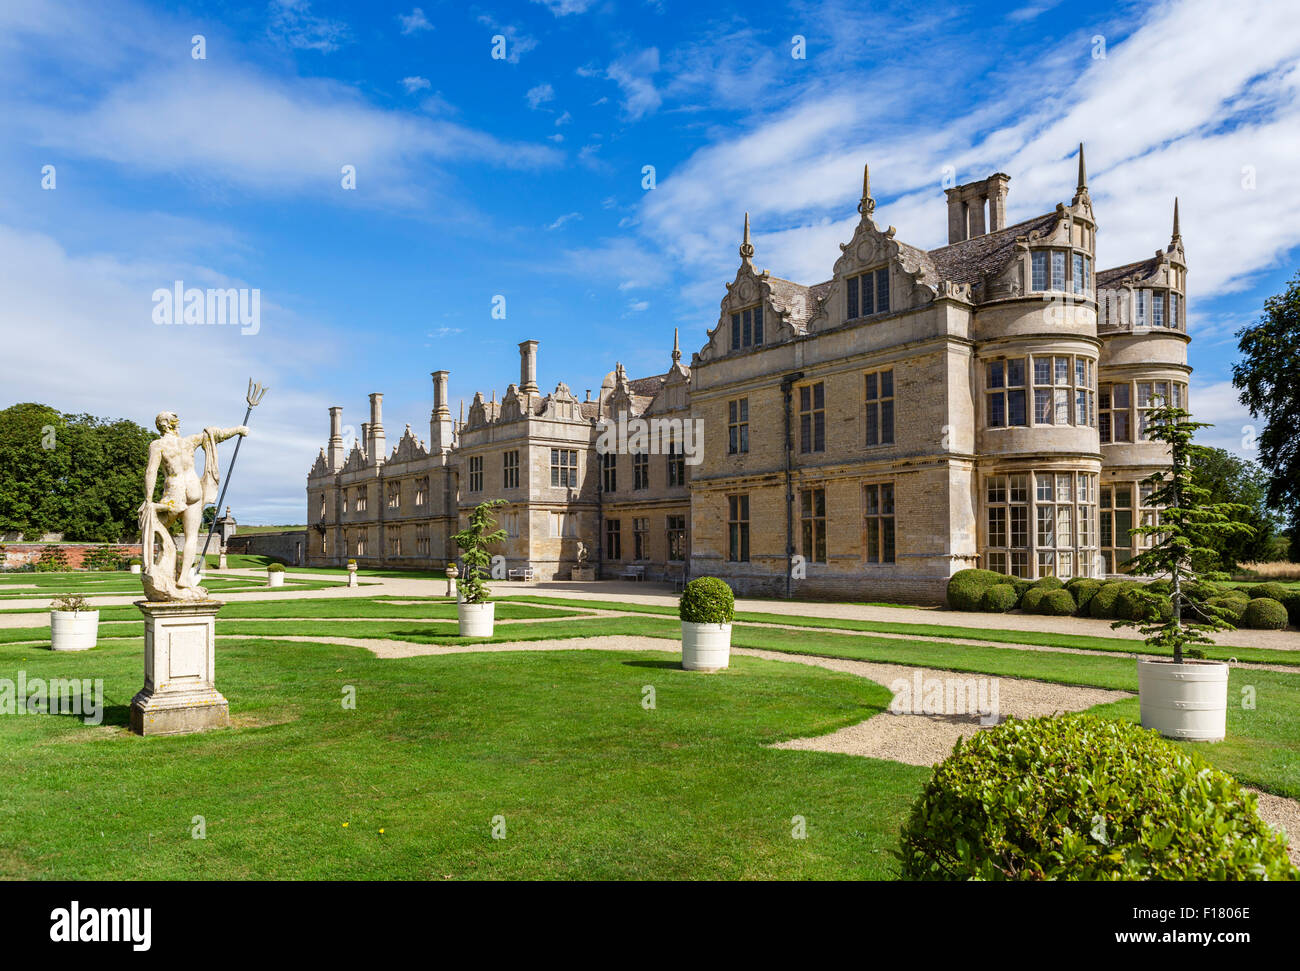 Kirby Hall, a now ruined 16thC Elizabethan country house near Gretton, Northamptonshire, England, UK - Stock Image